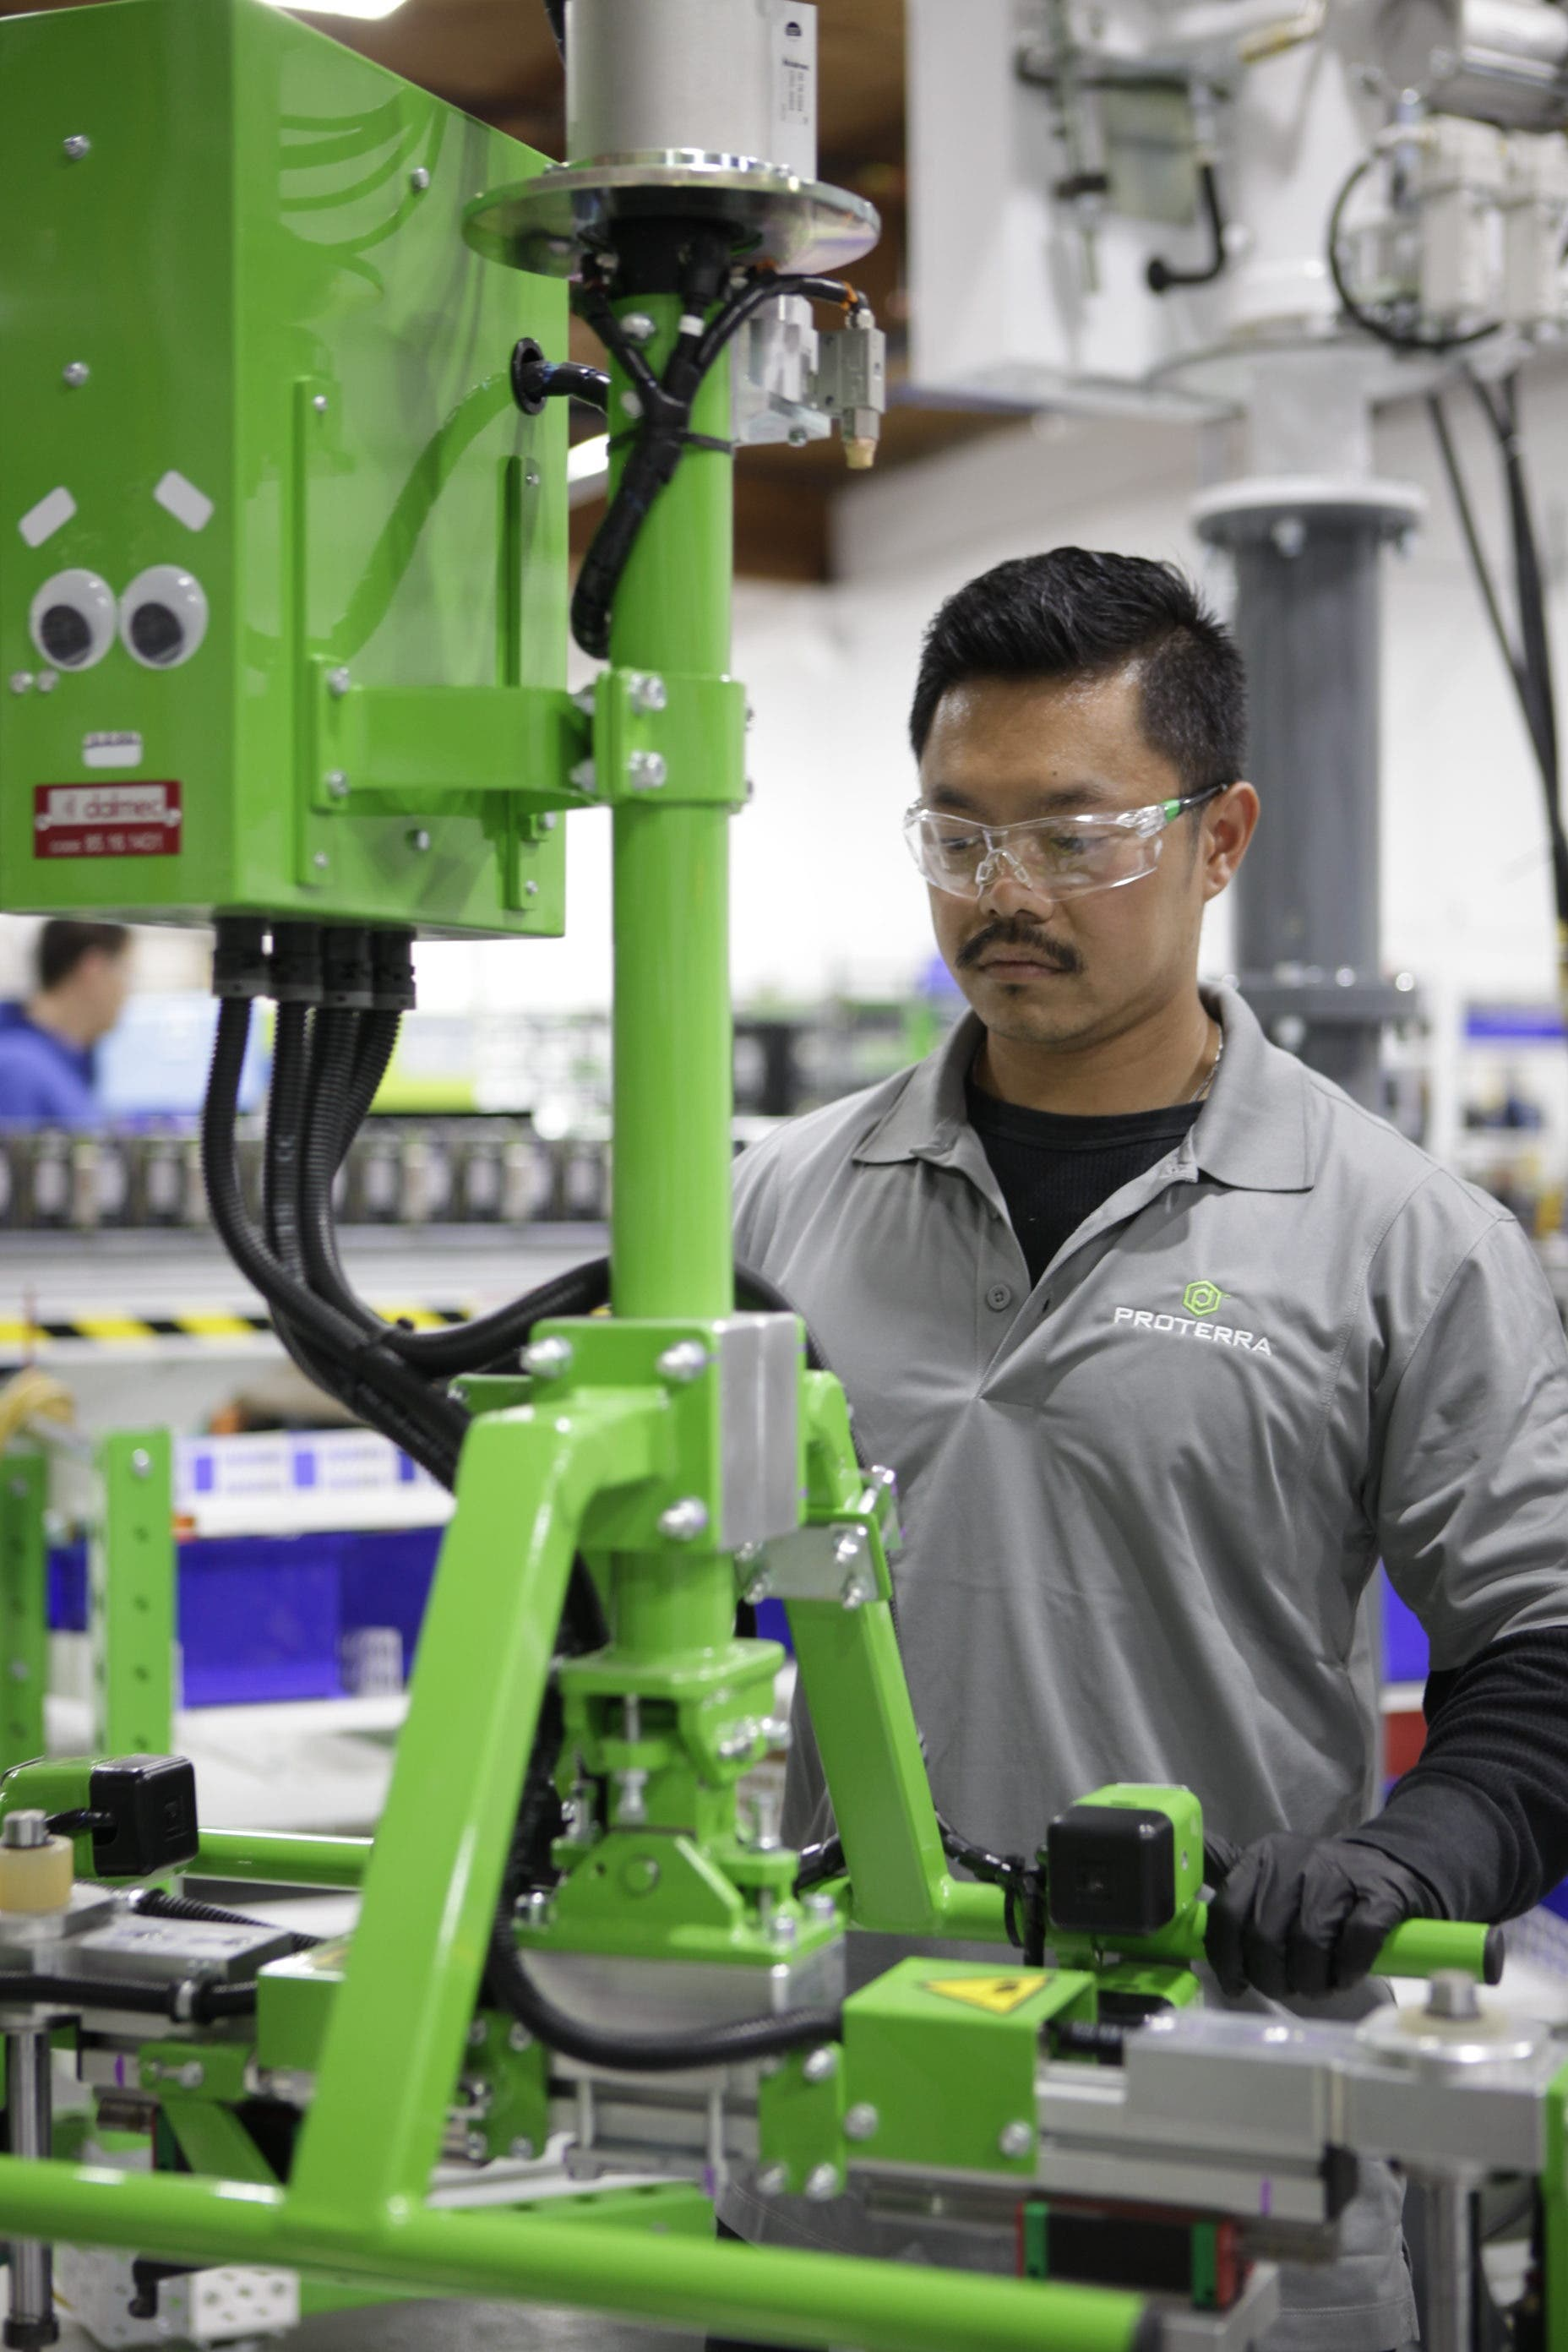 Proterra LG Chem Battery Cell Electric Bus Factory California